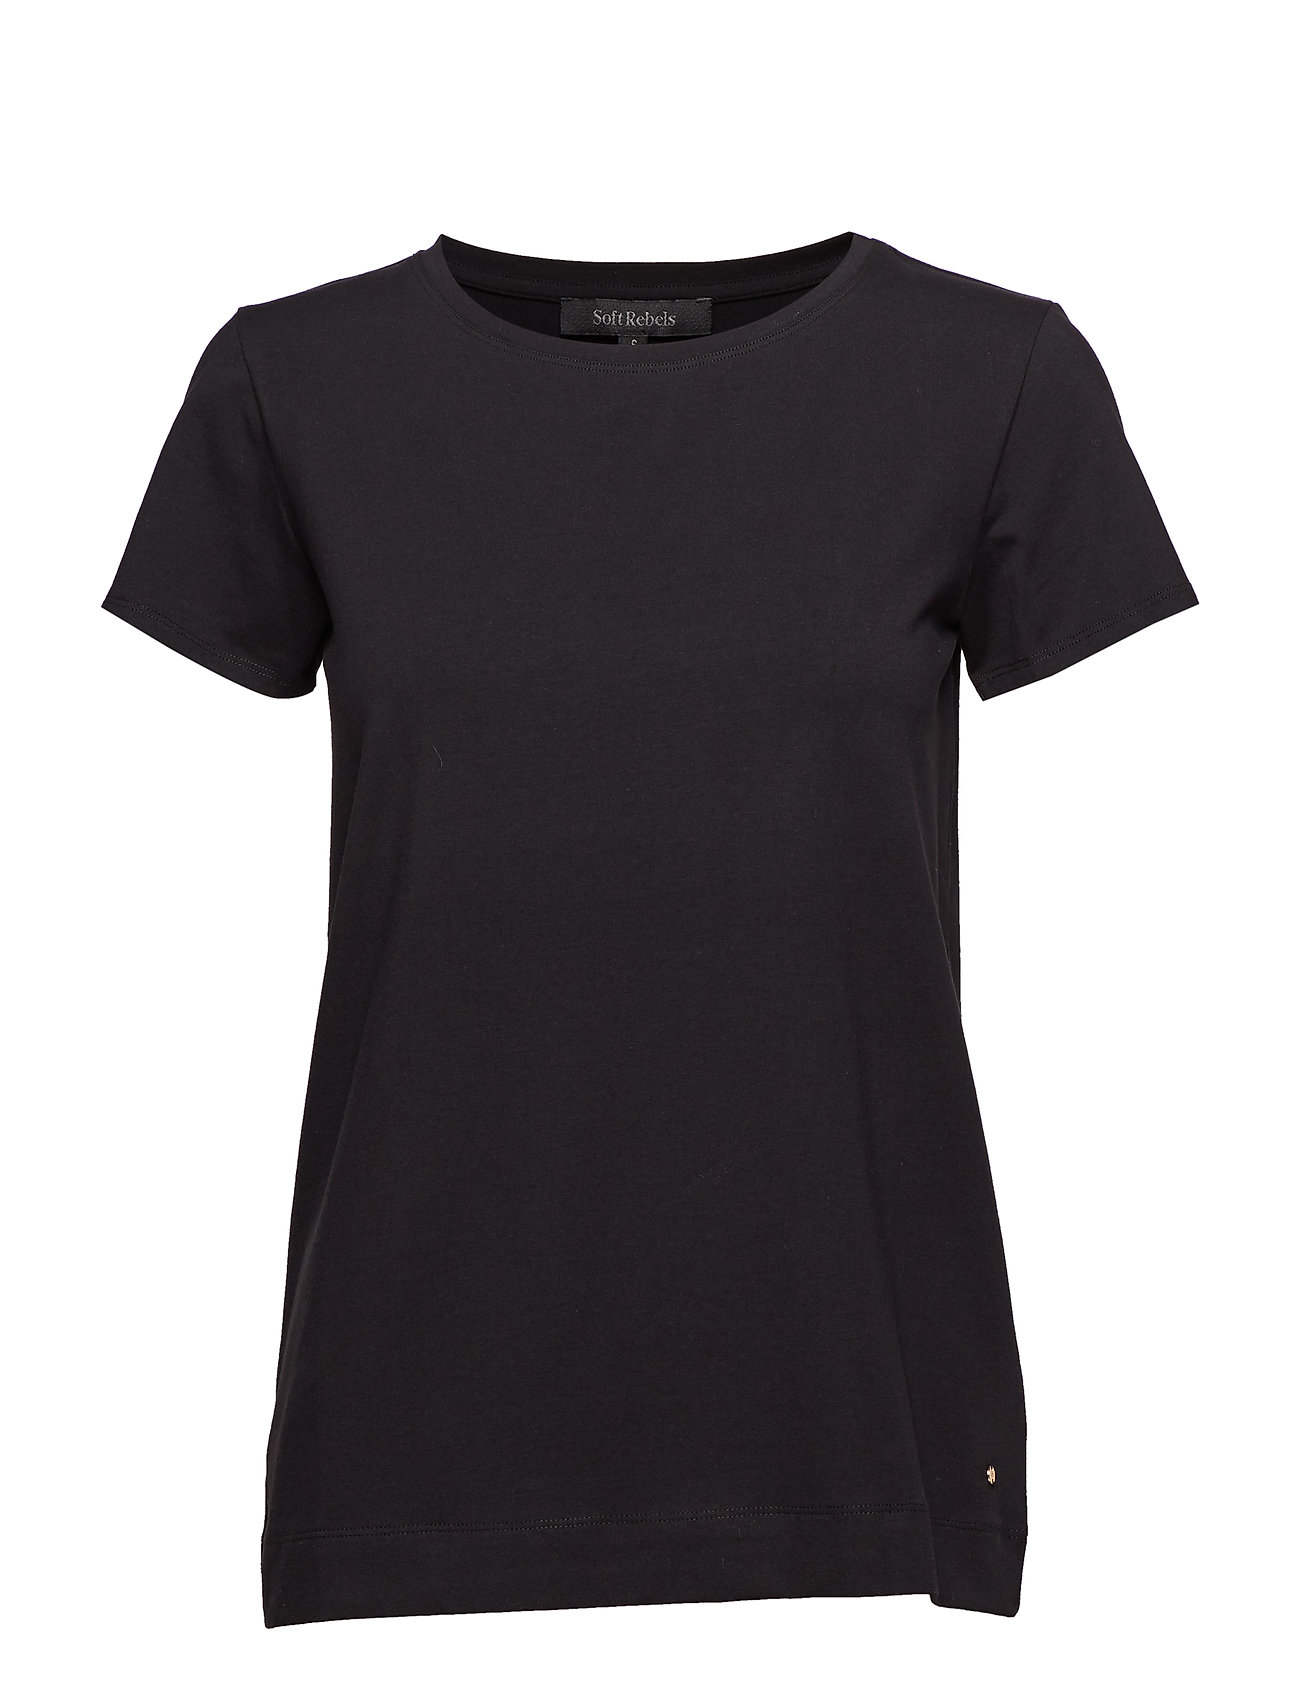 Soft Rebels Elle T-shirt - BLACK